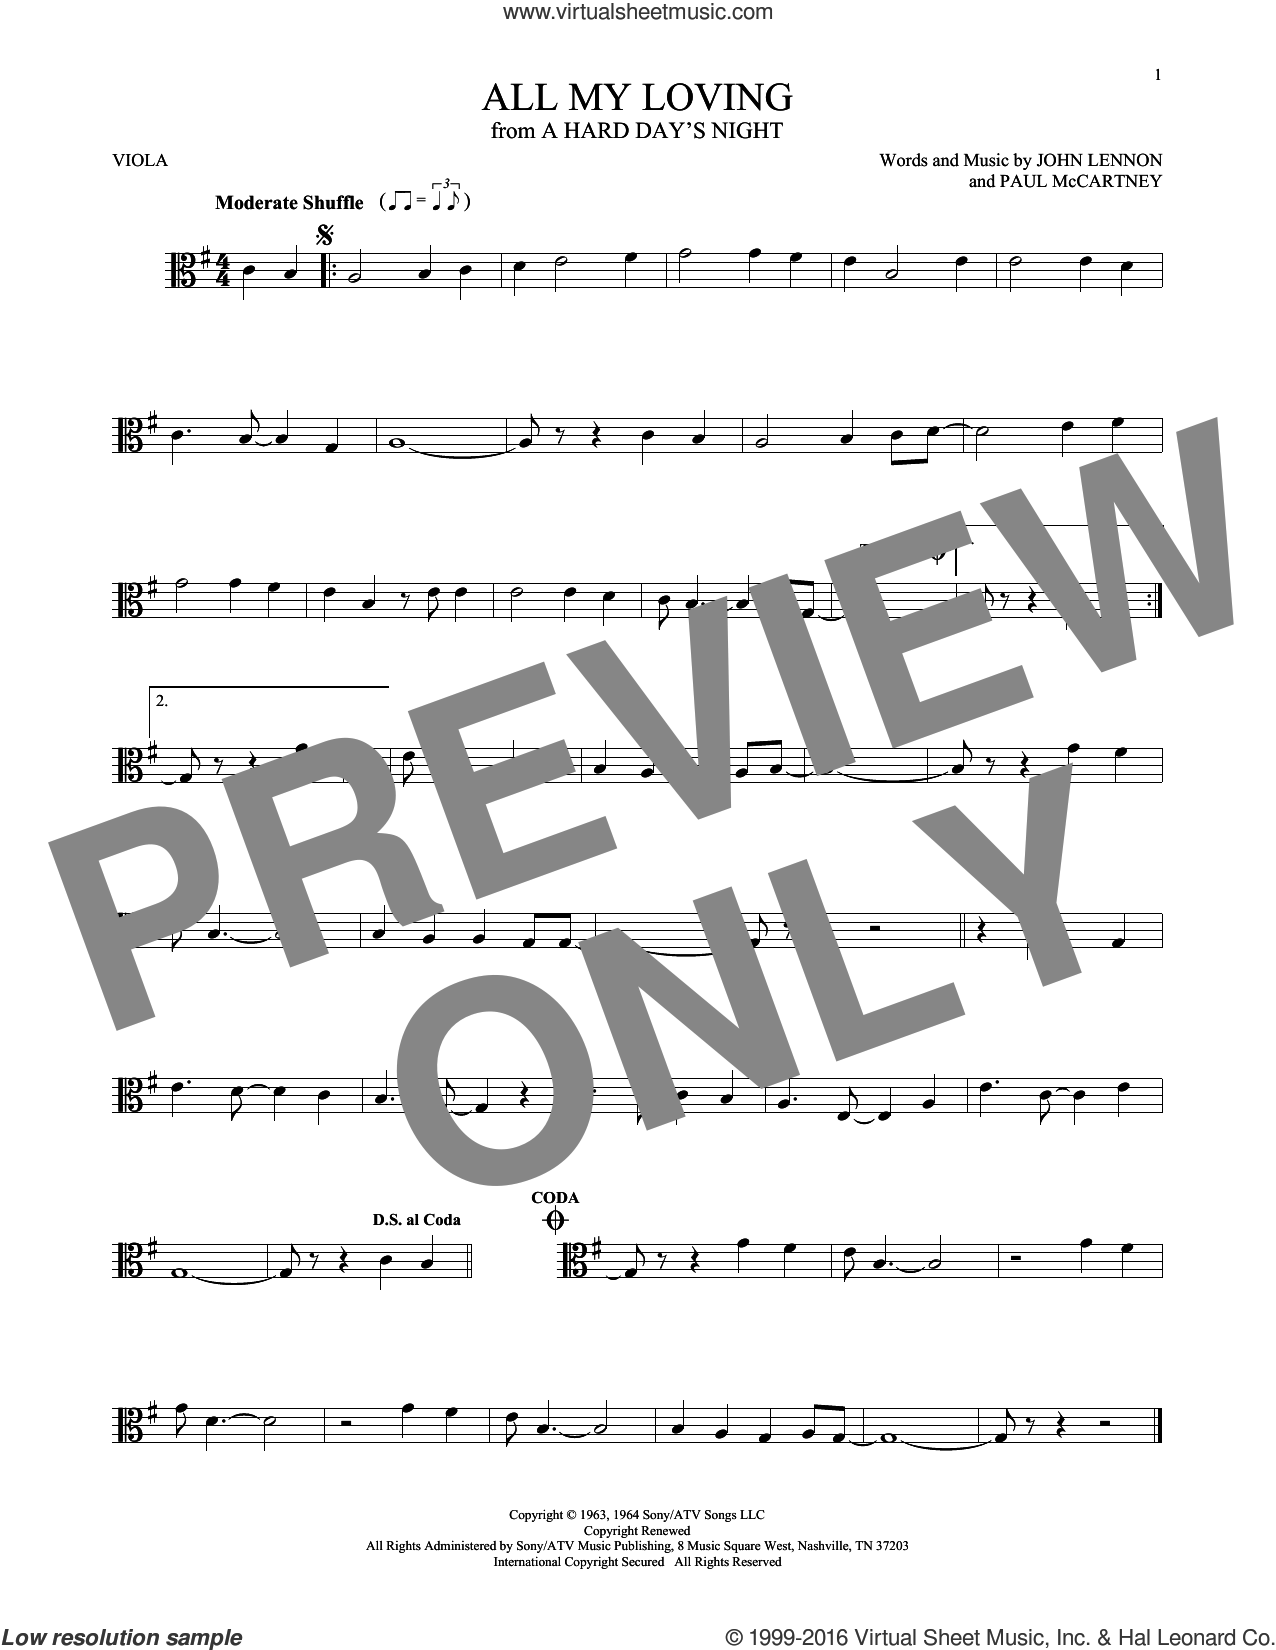 All My Loving sheet music for viola solo by Paul McCartney